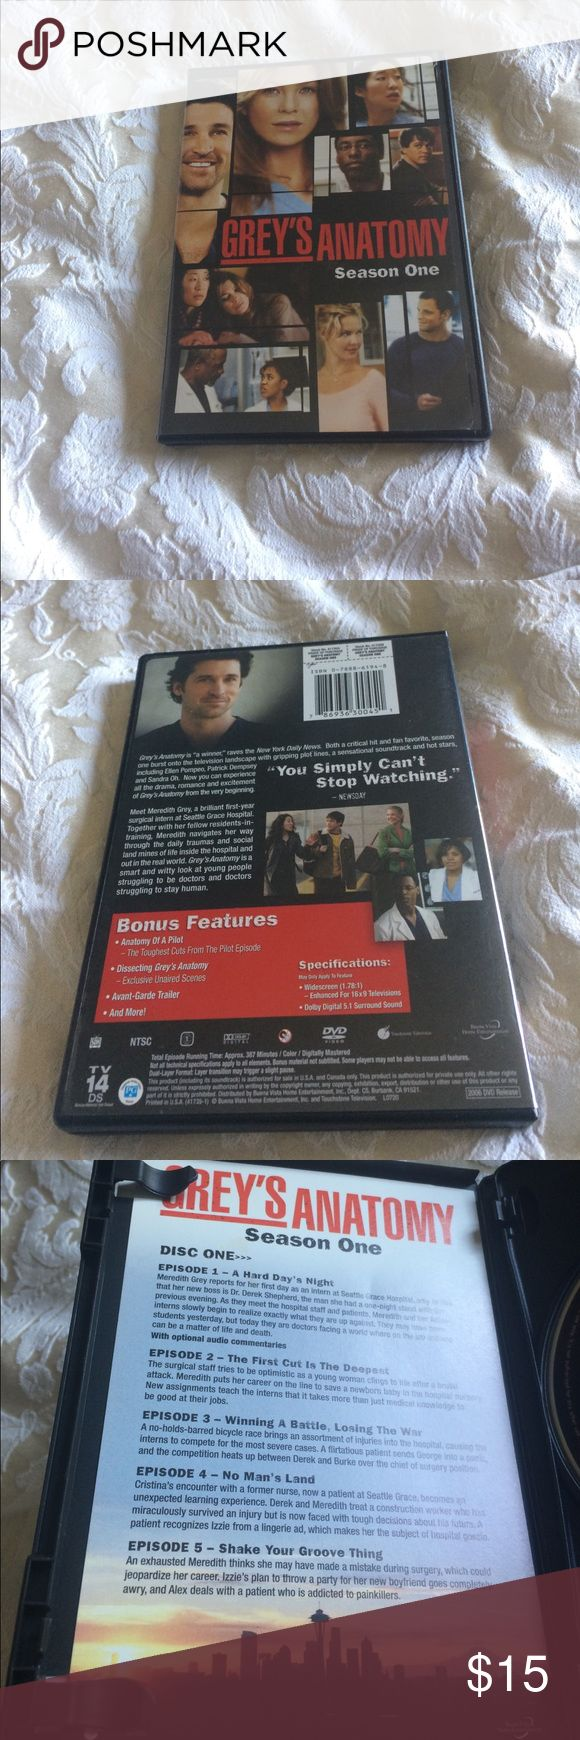 Grey's Anatomy season one 2 disc set with bonus features, like new! Other